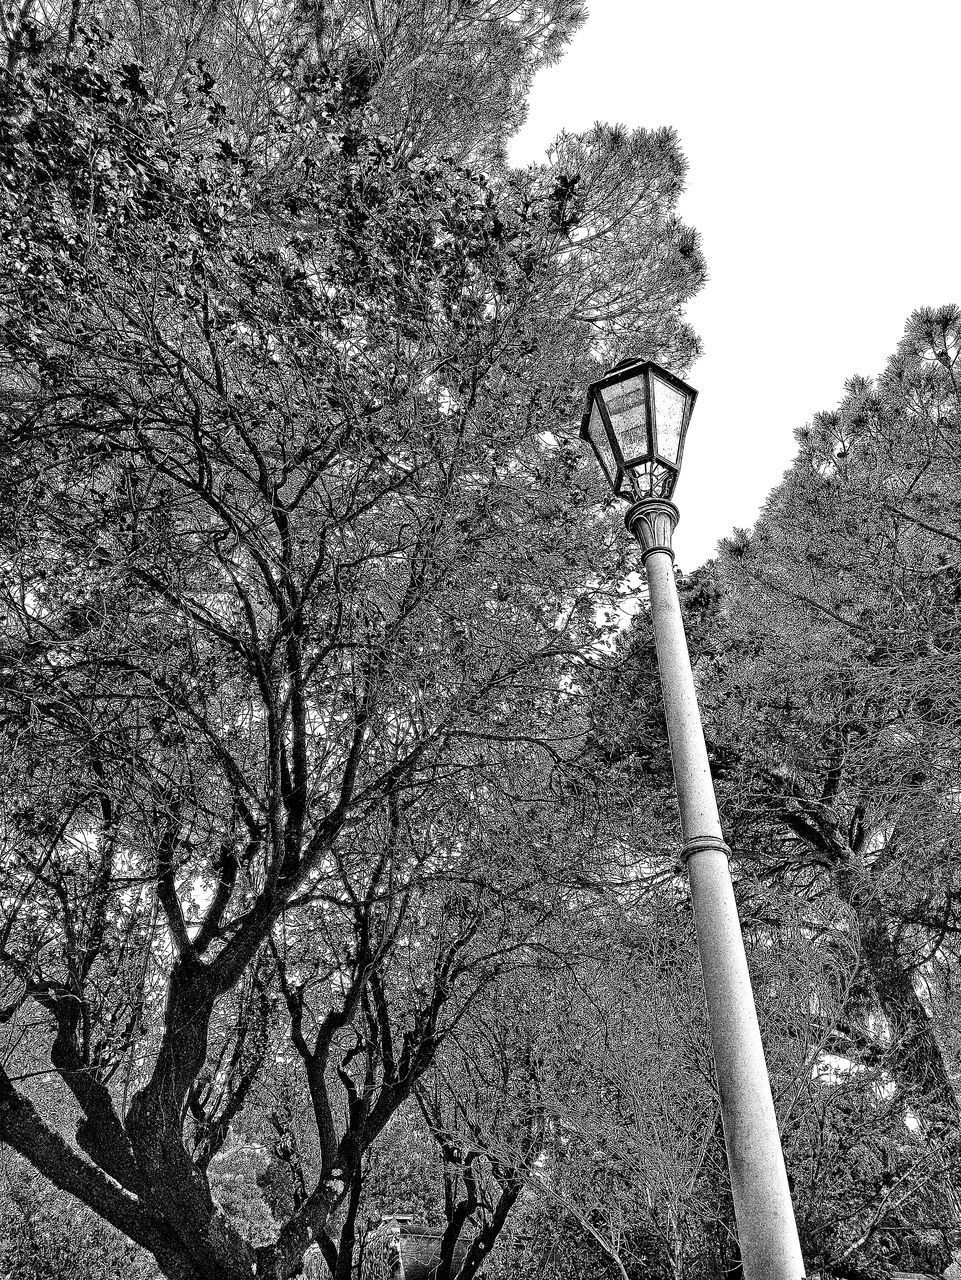 LOW ANGLE VIEW OF STREET LIGHT AND TREE